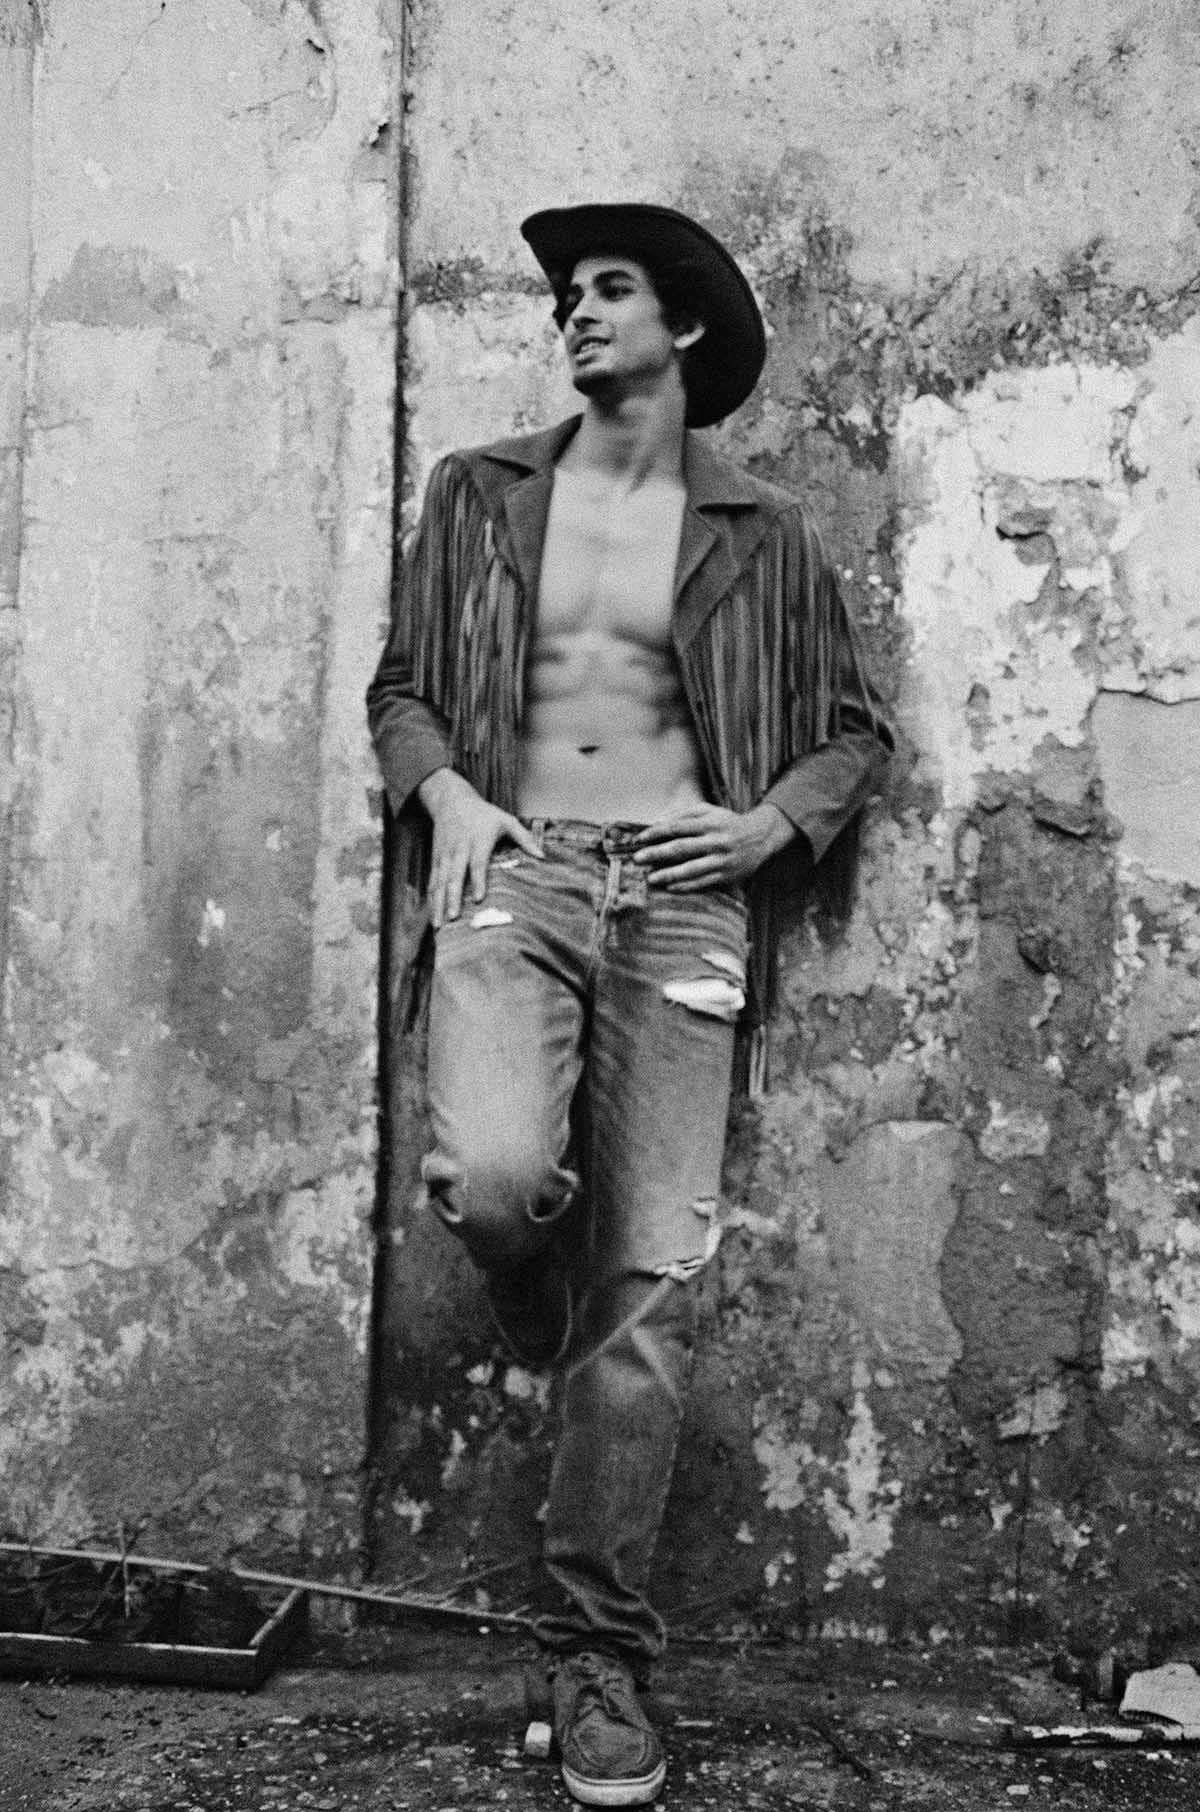 Gabriel Galindo by Felipe Pilotto for Brazilian Male Model